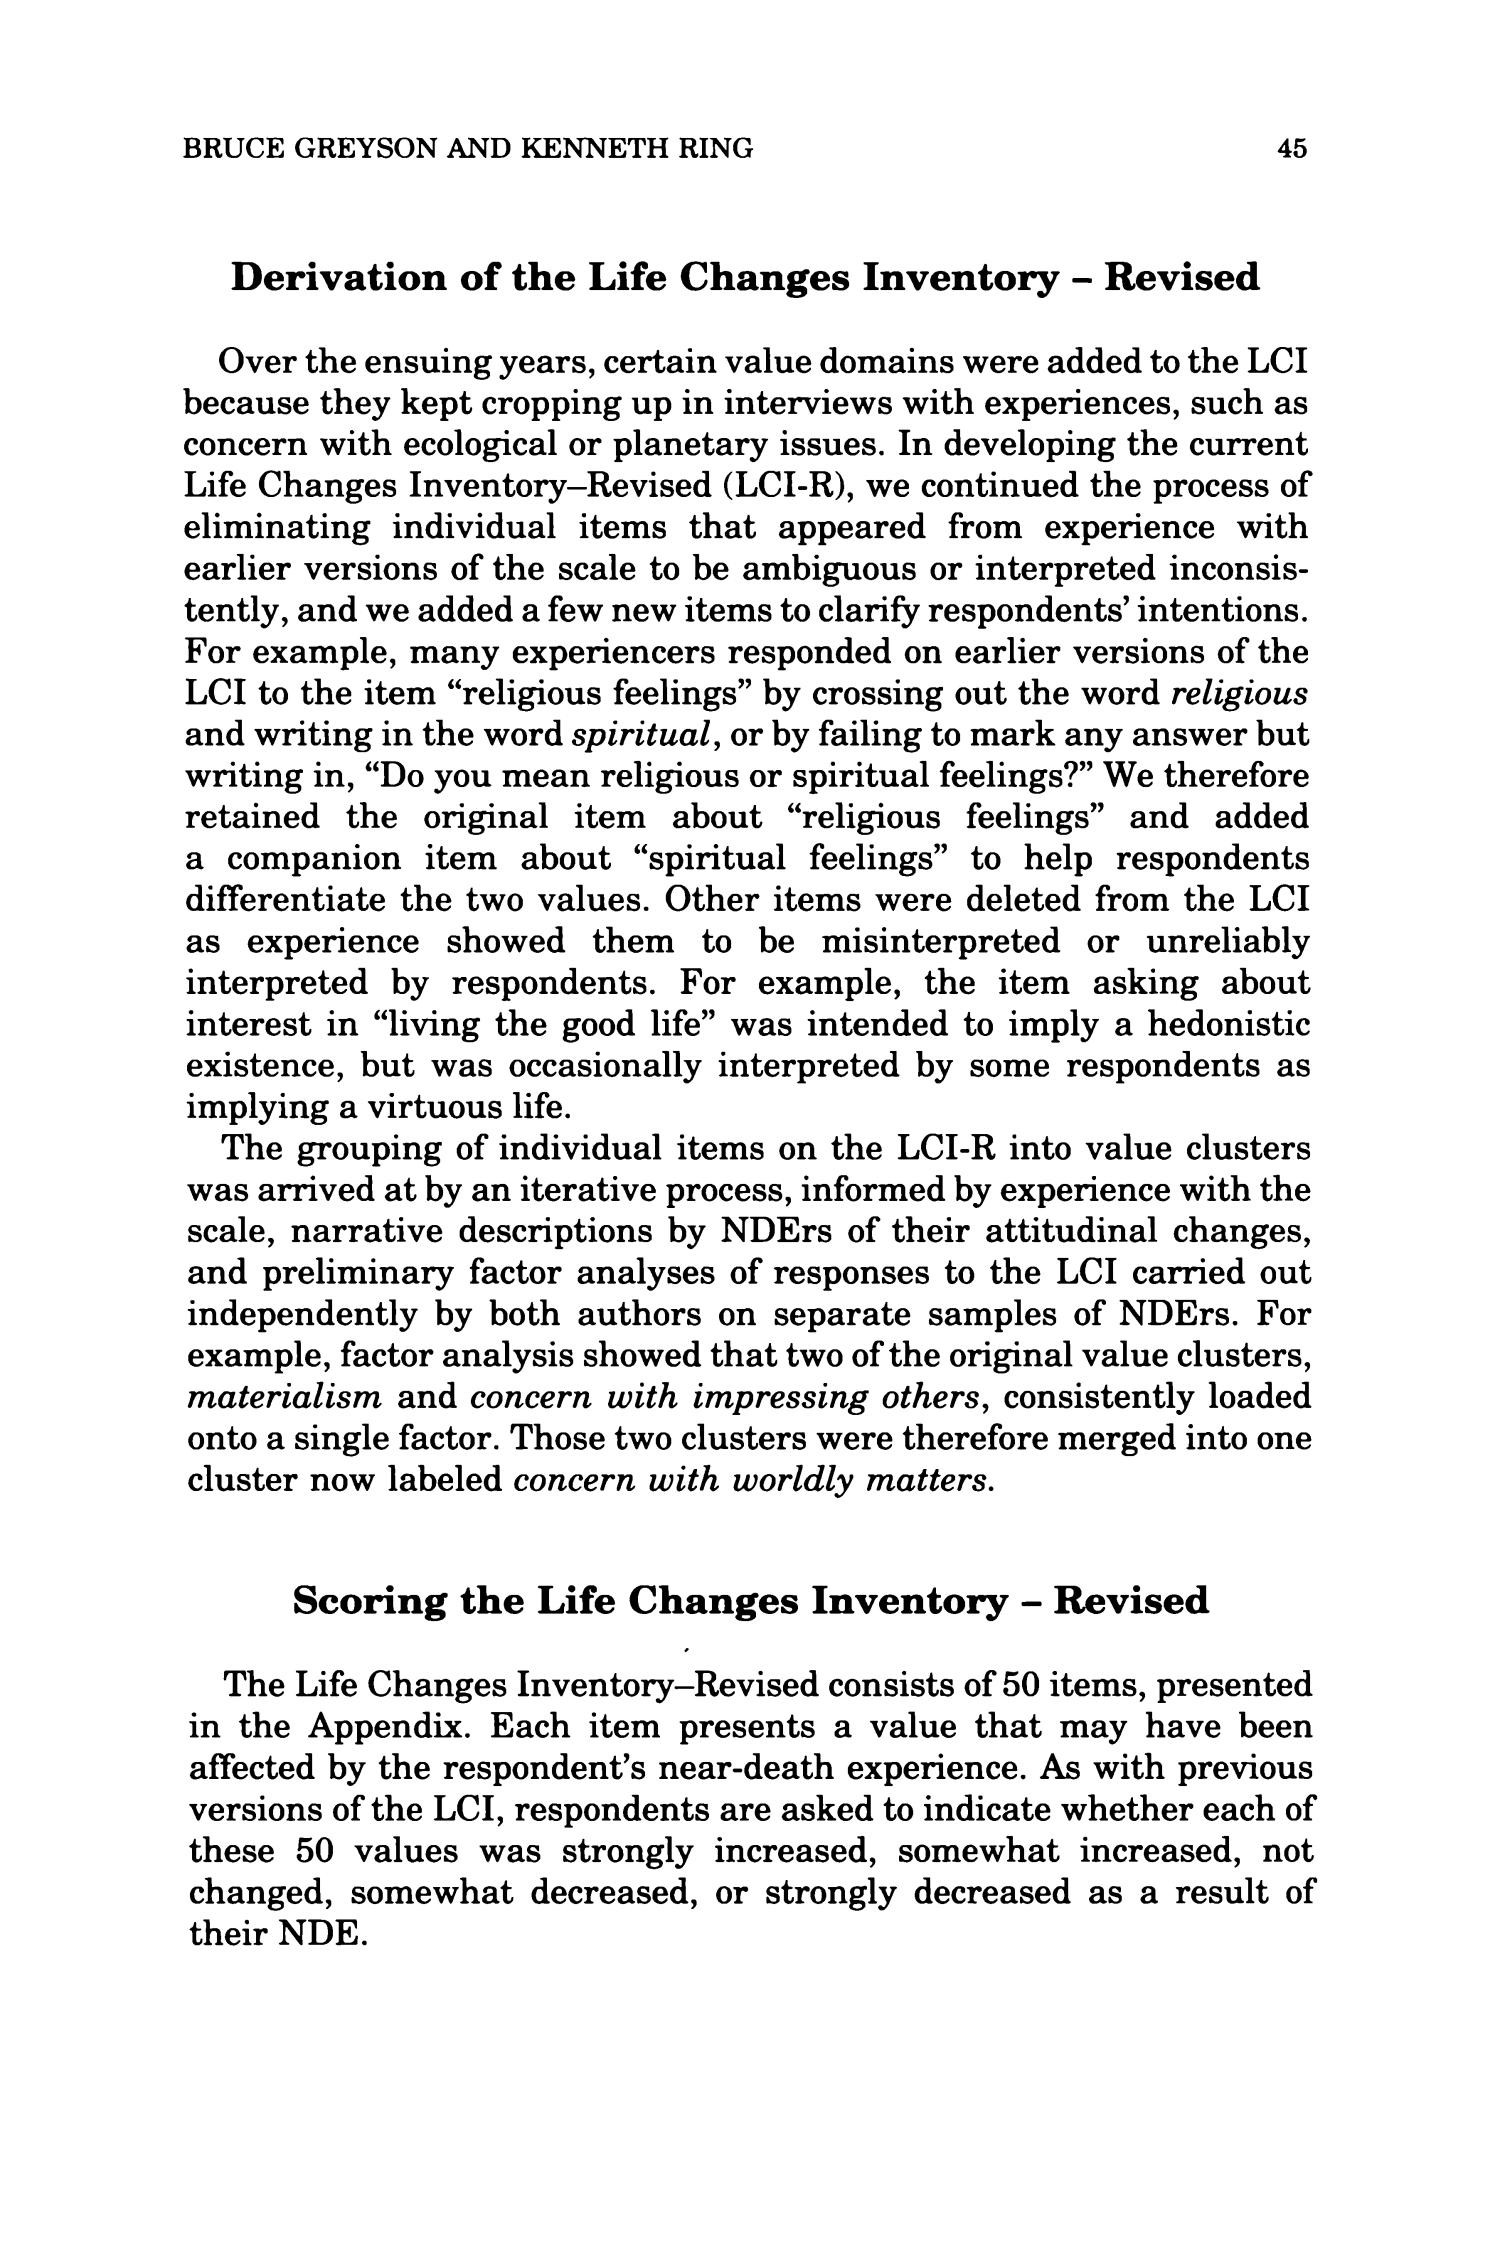 The Life Changes Inventory - Revised                                                                                                      45